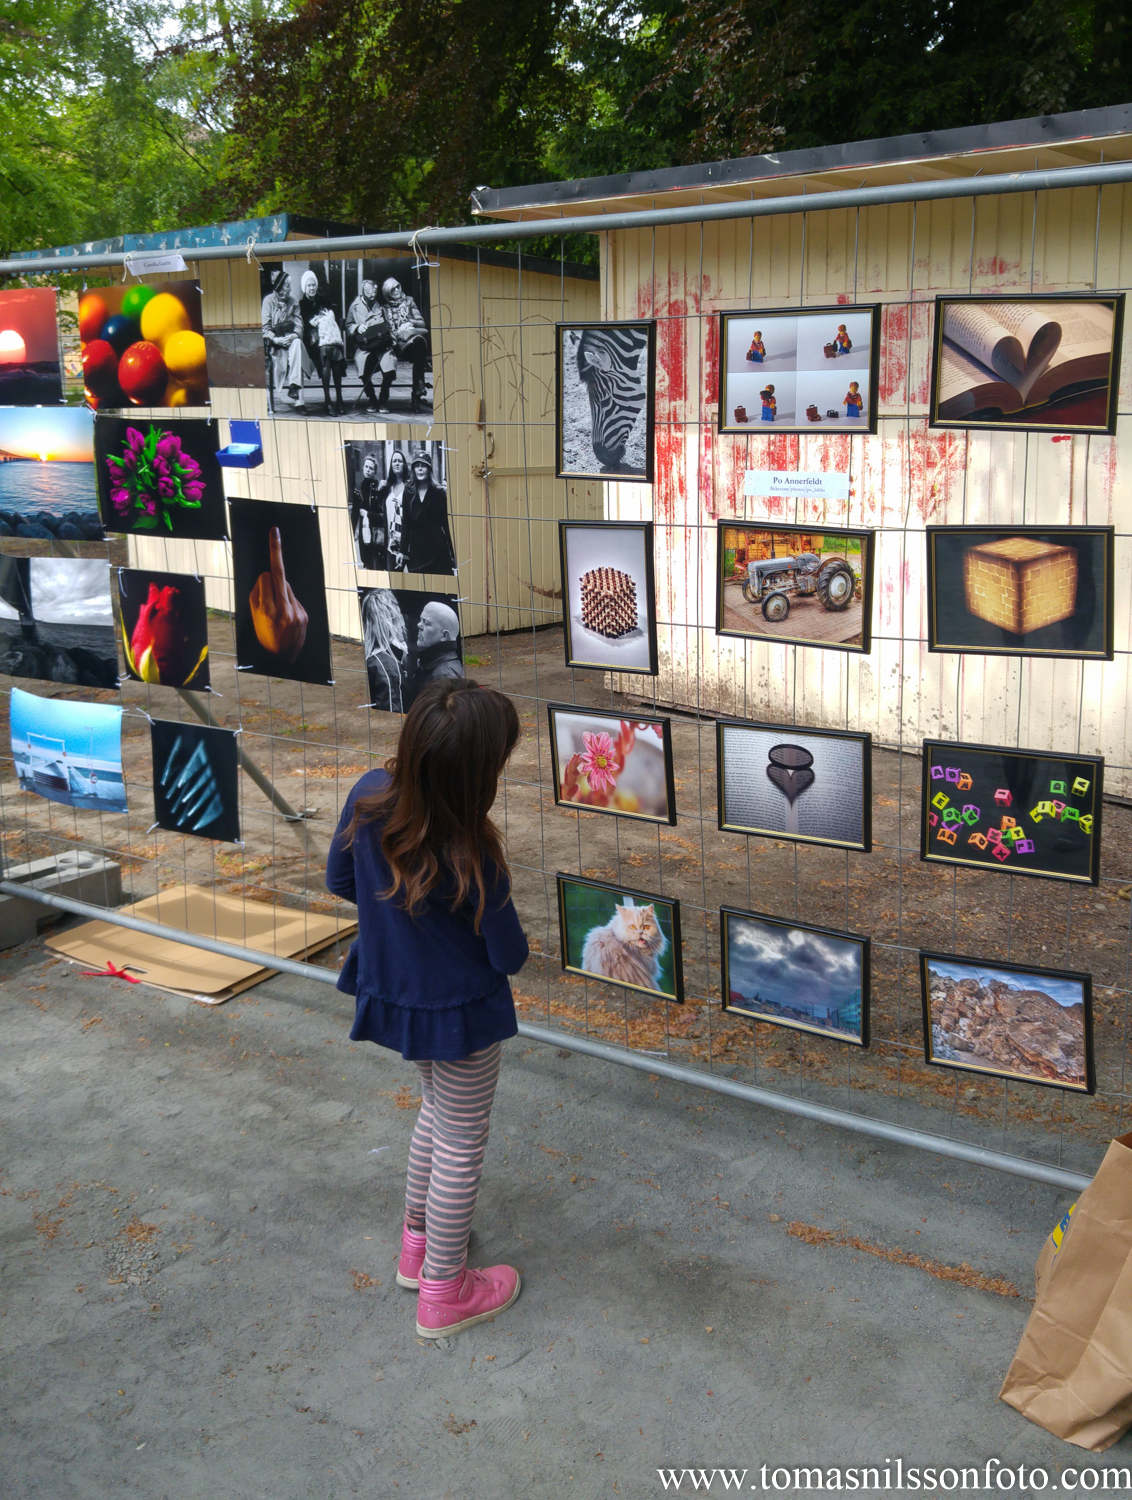 We had people of all ages looking at the photos on display.